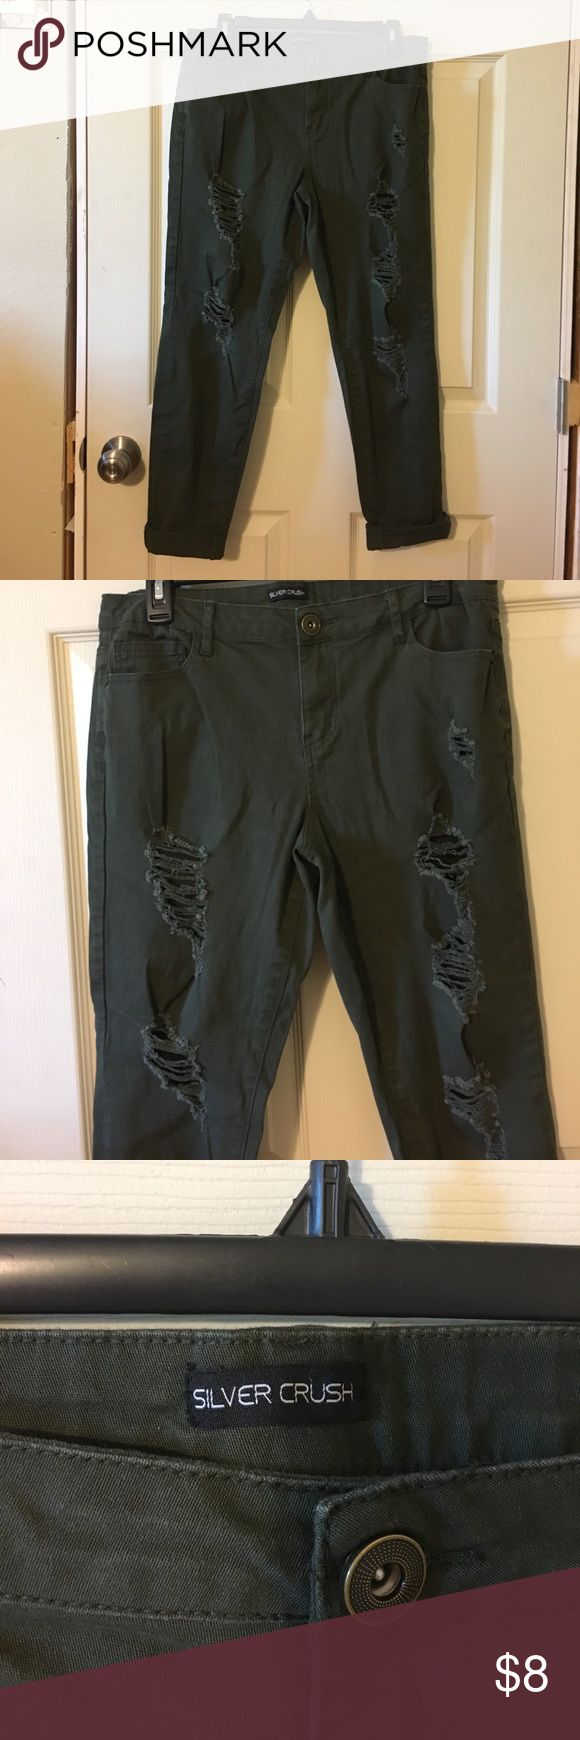 Selling this Ladies army green distressed skinny pants. on Poshmark! My username is: bloomforyou. #shopmycloset #poshmark #fashion #shopping #style #forsale #silver crush #Pants